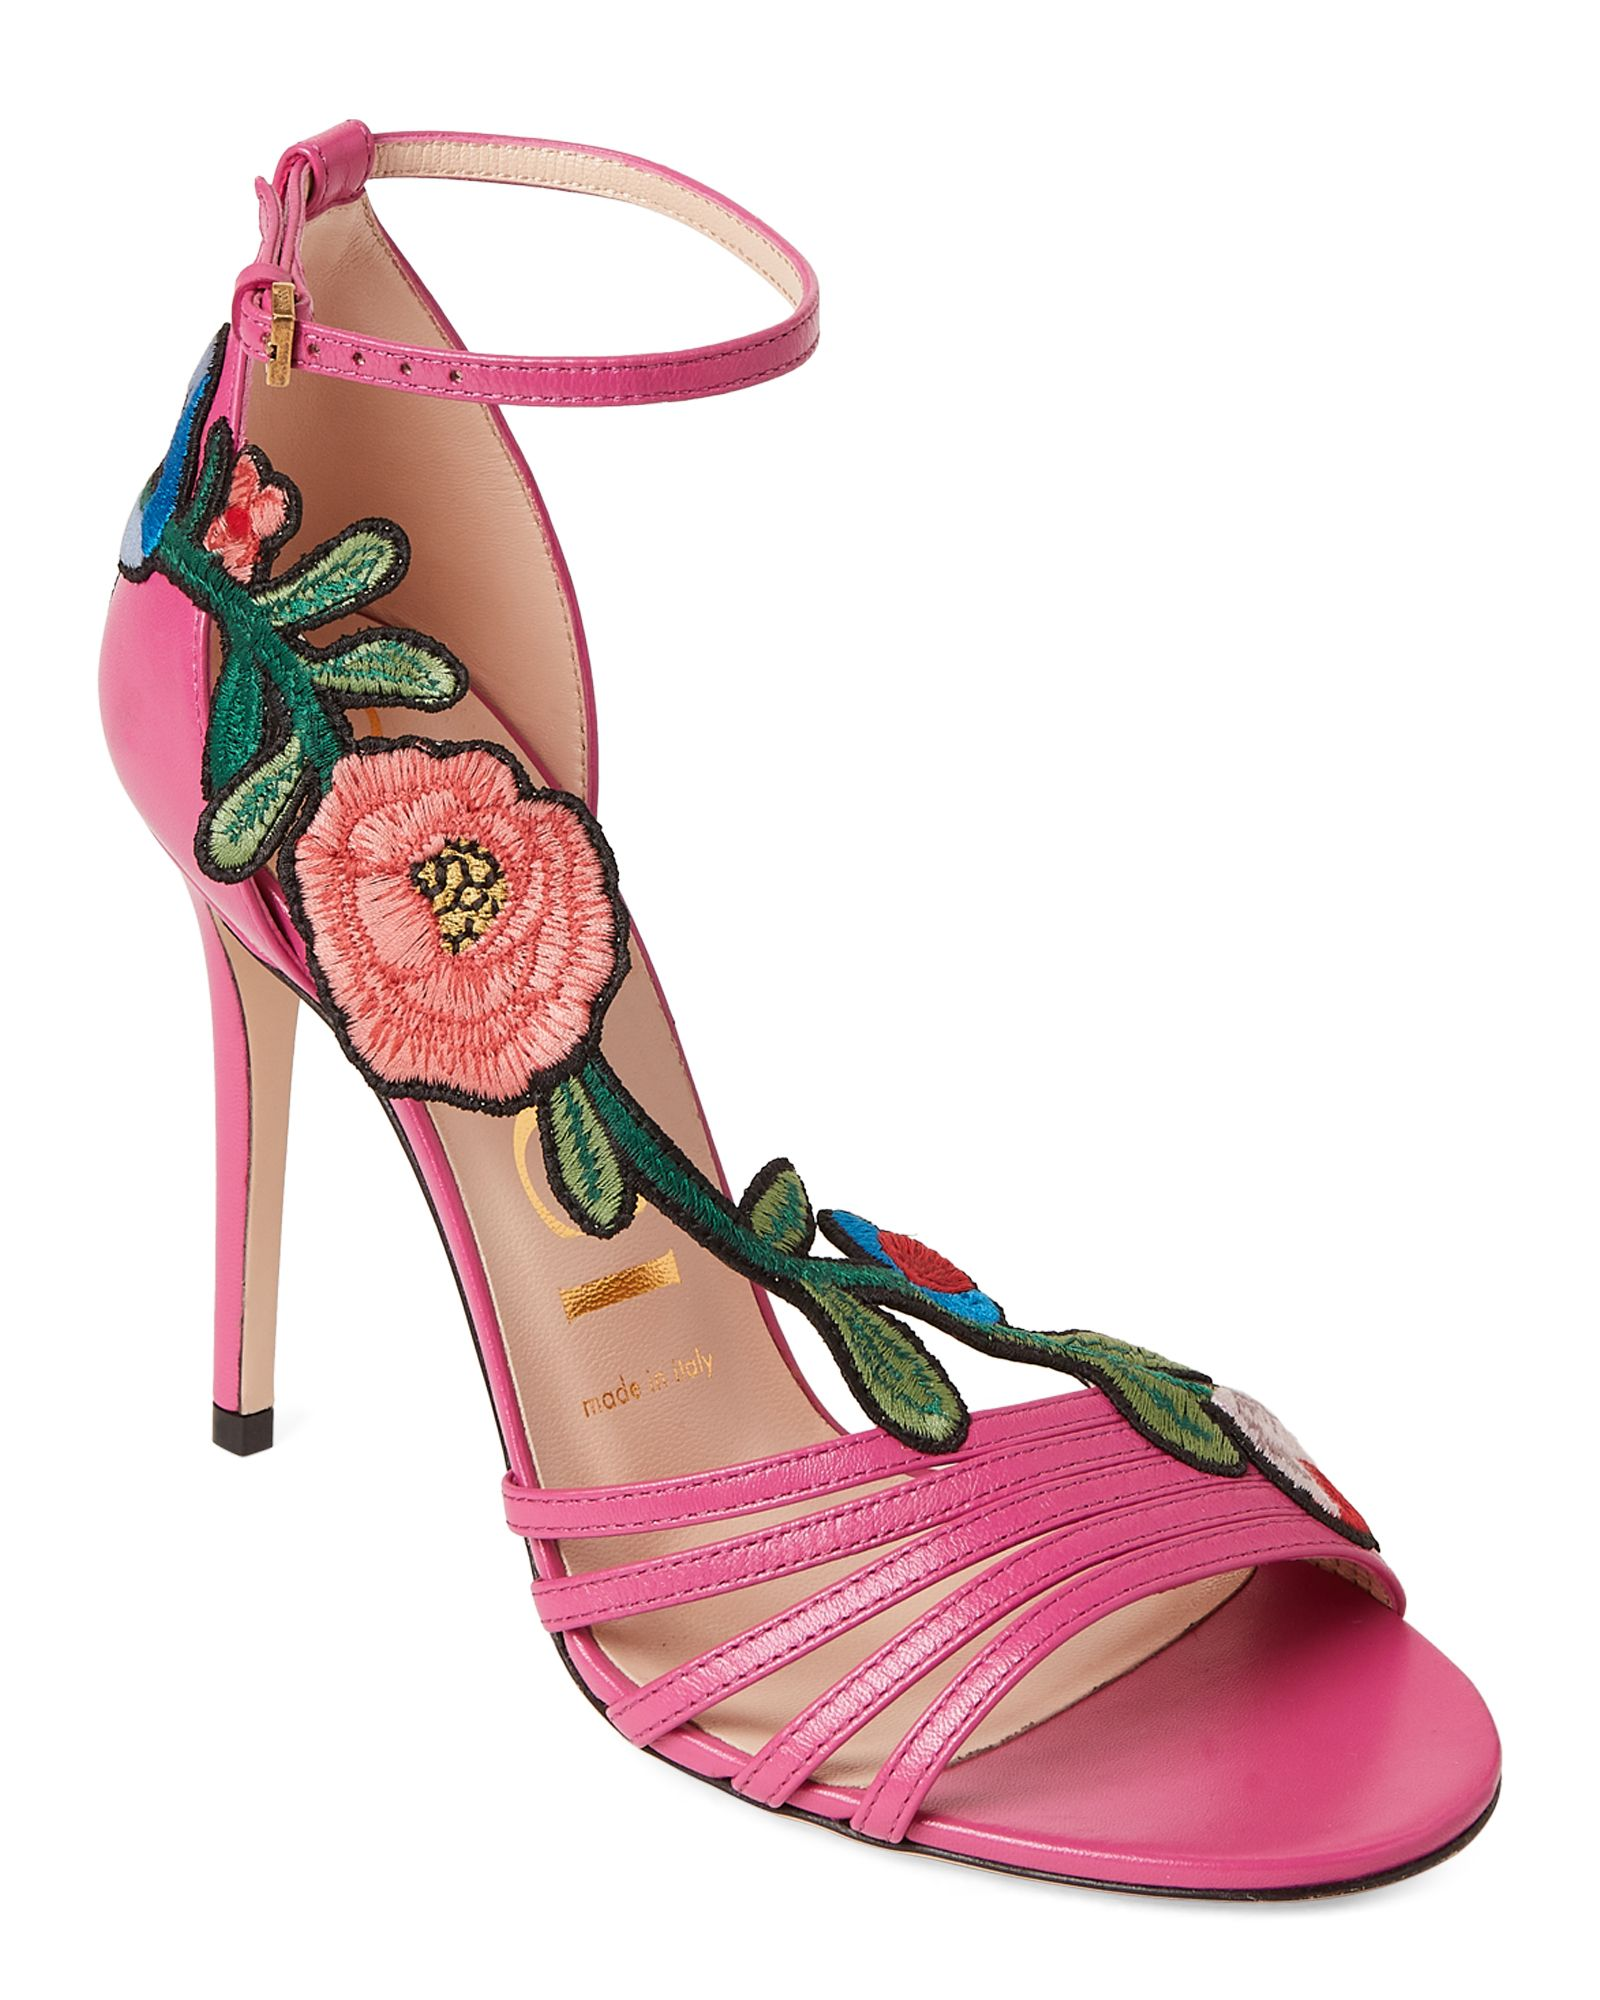 afda769a3da Gucci Pink Floral Embroidered Leather Sandals